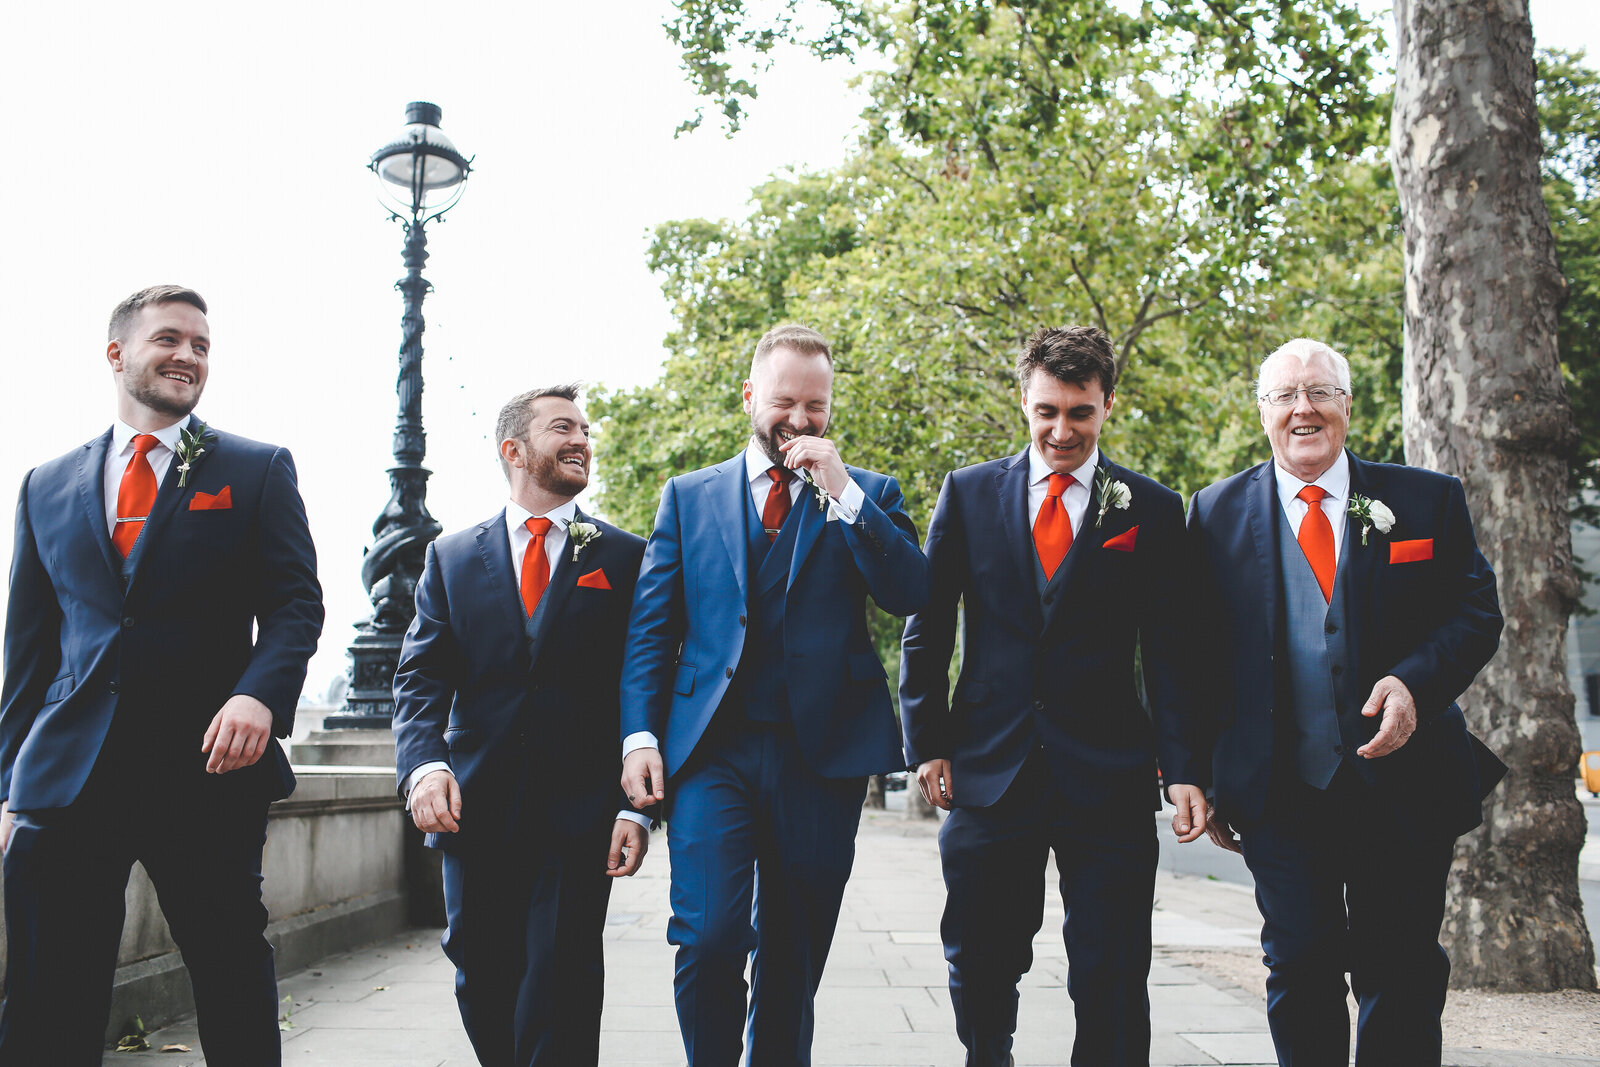 WP-LONDON-WEDDING-GROOMSMEN-WALK-THAMES-LAUGHING_0005